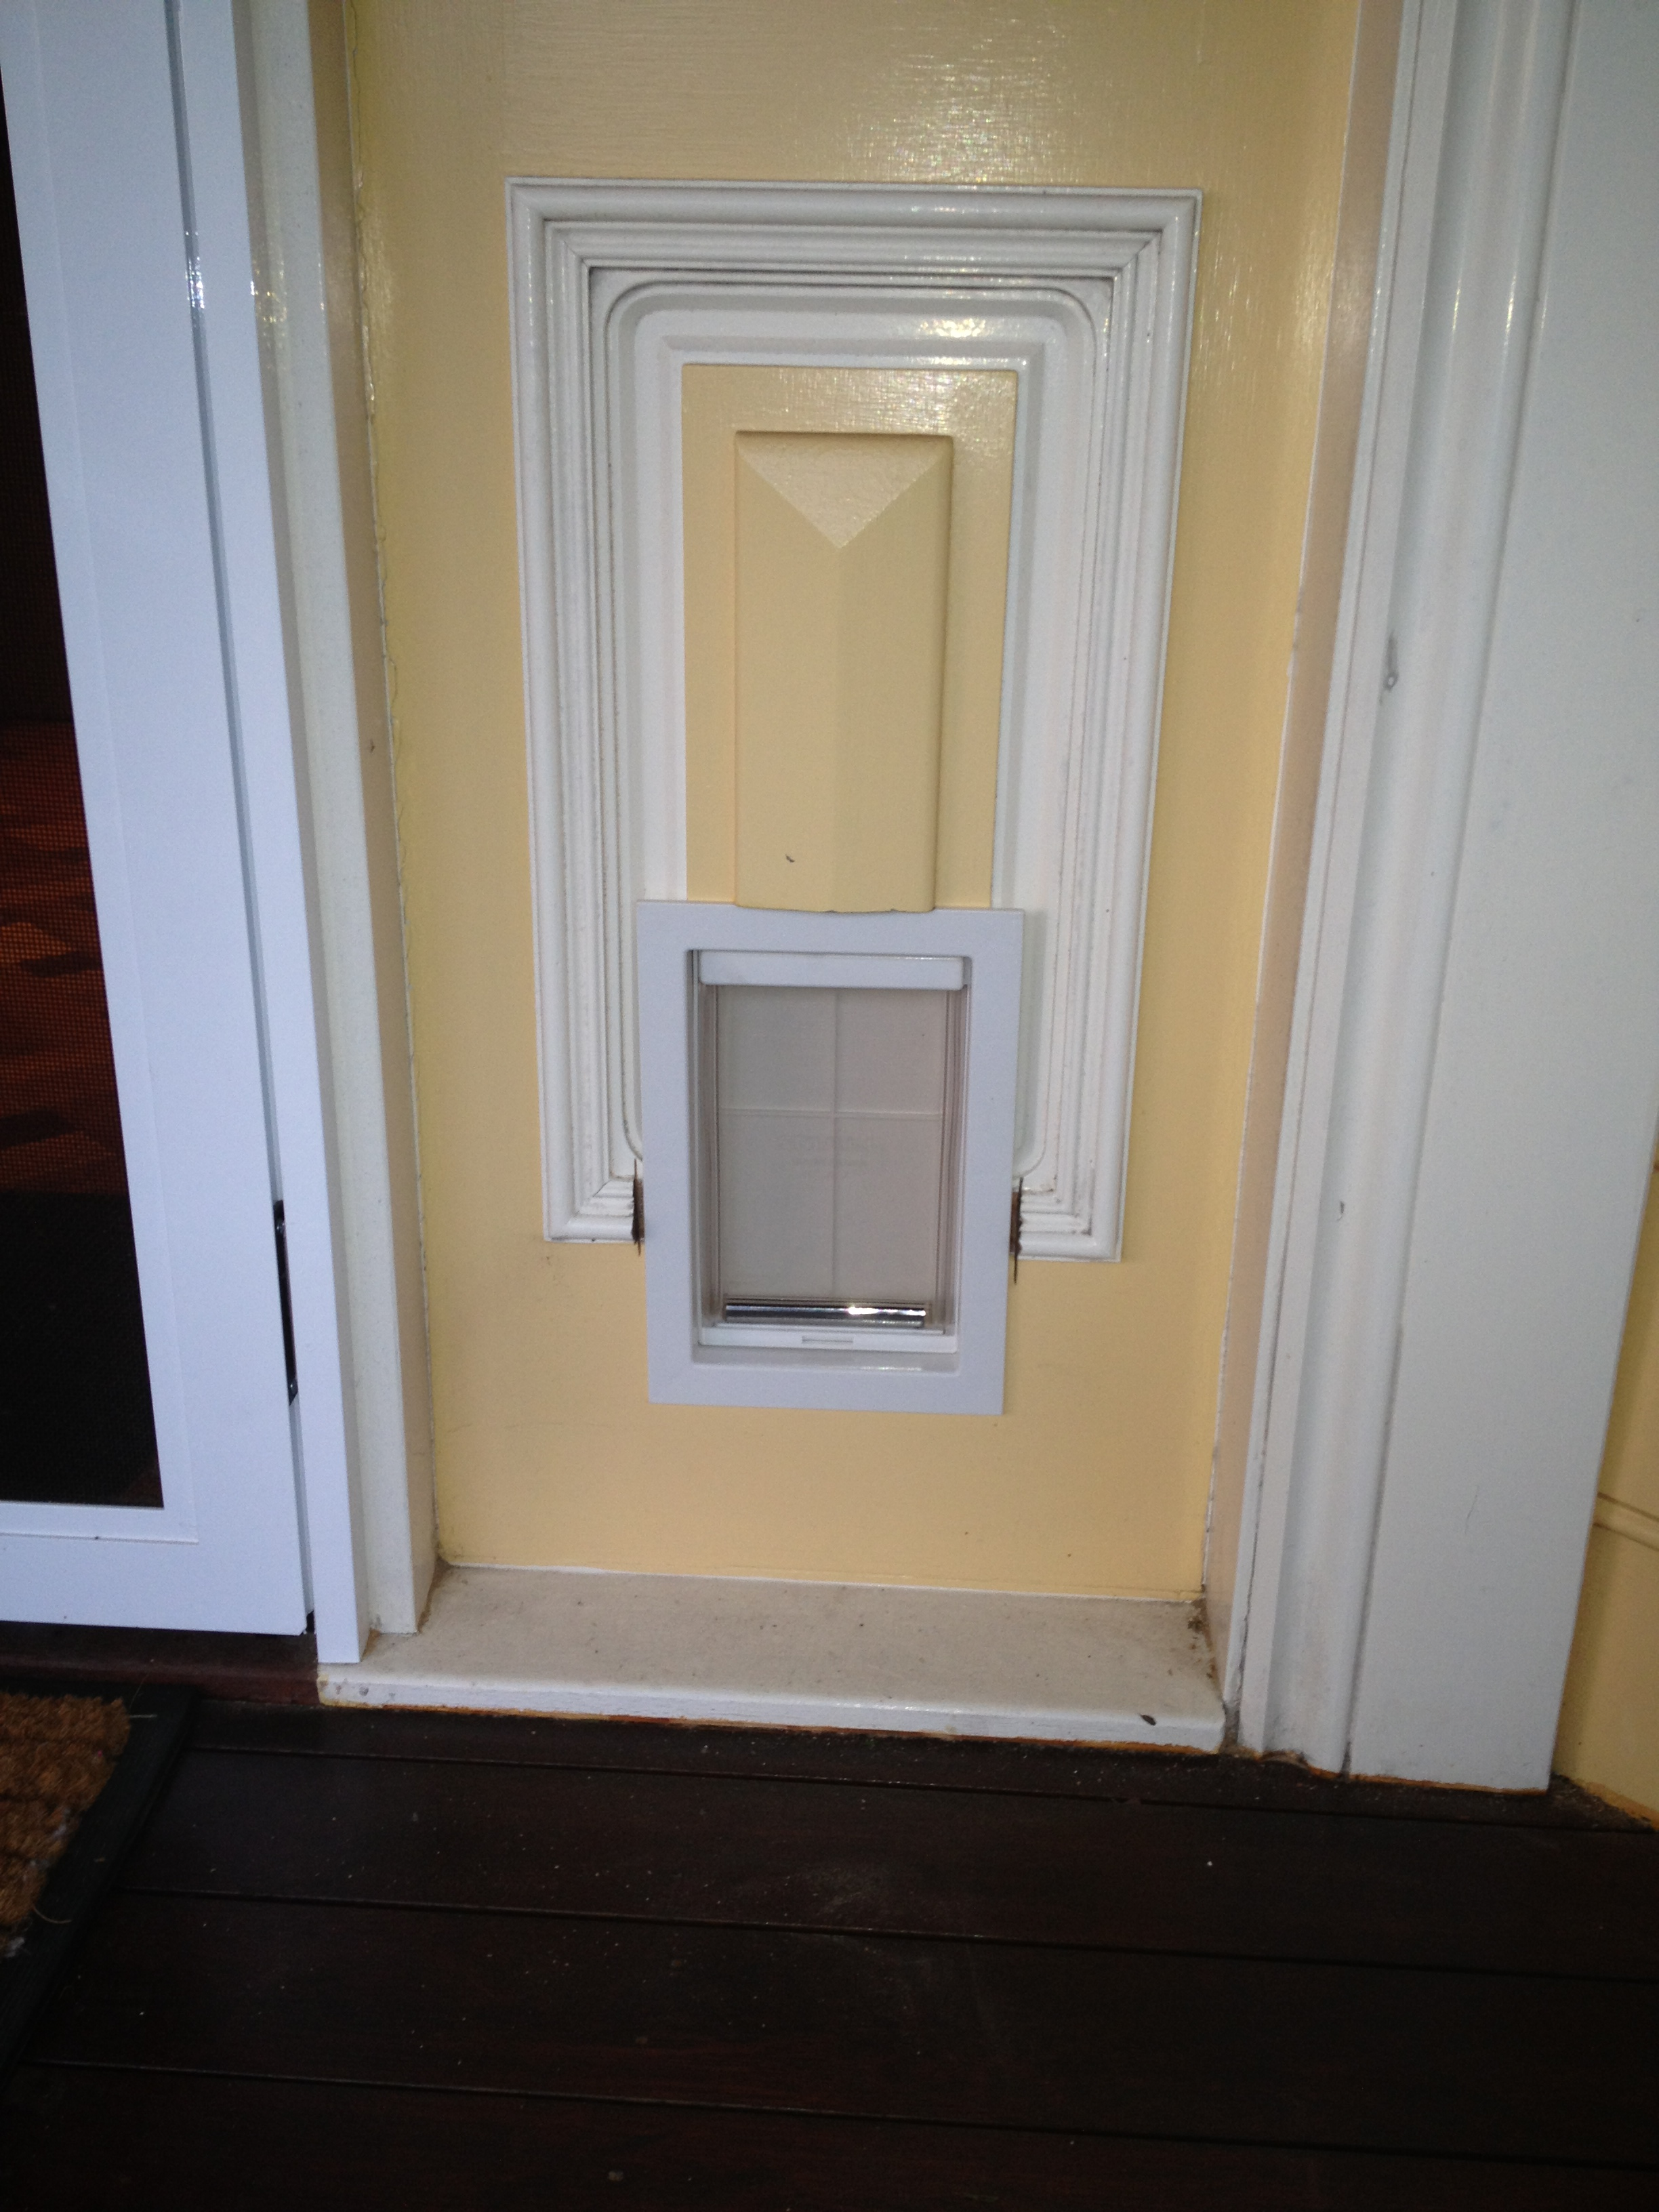 Ideal Original Pet Doors Australiapetdoors Com Au